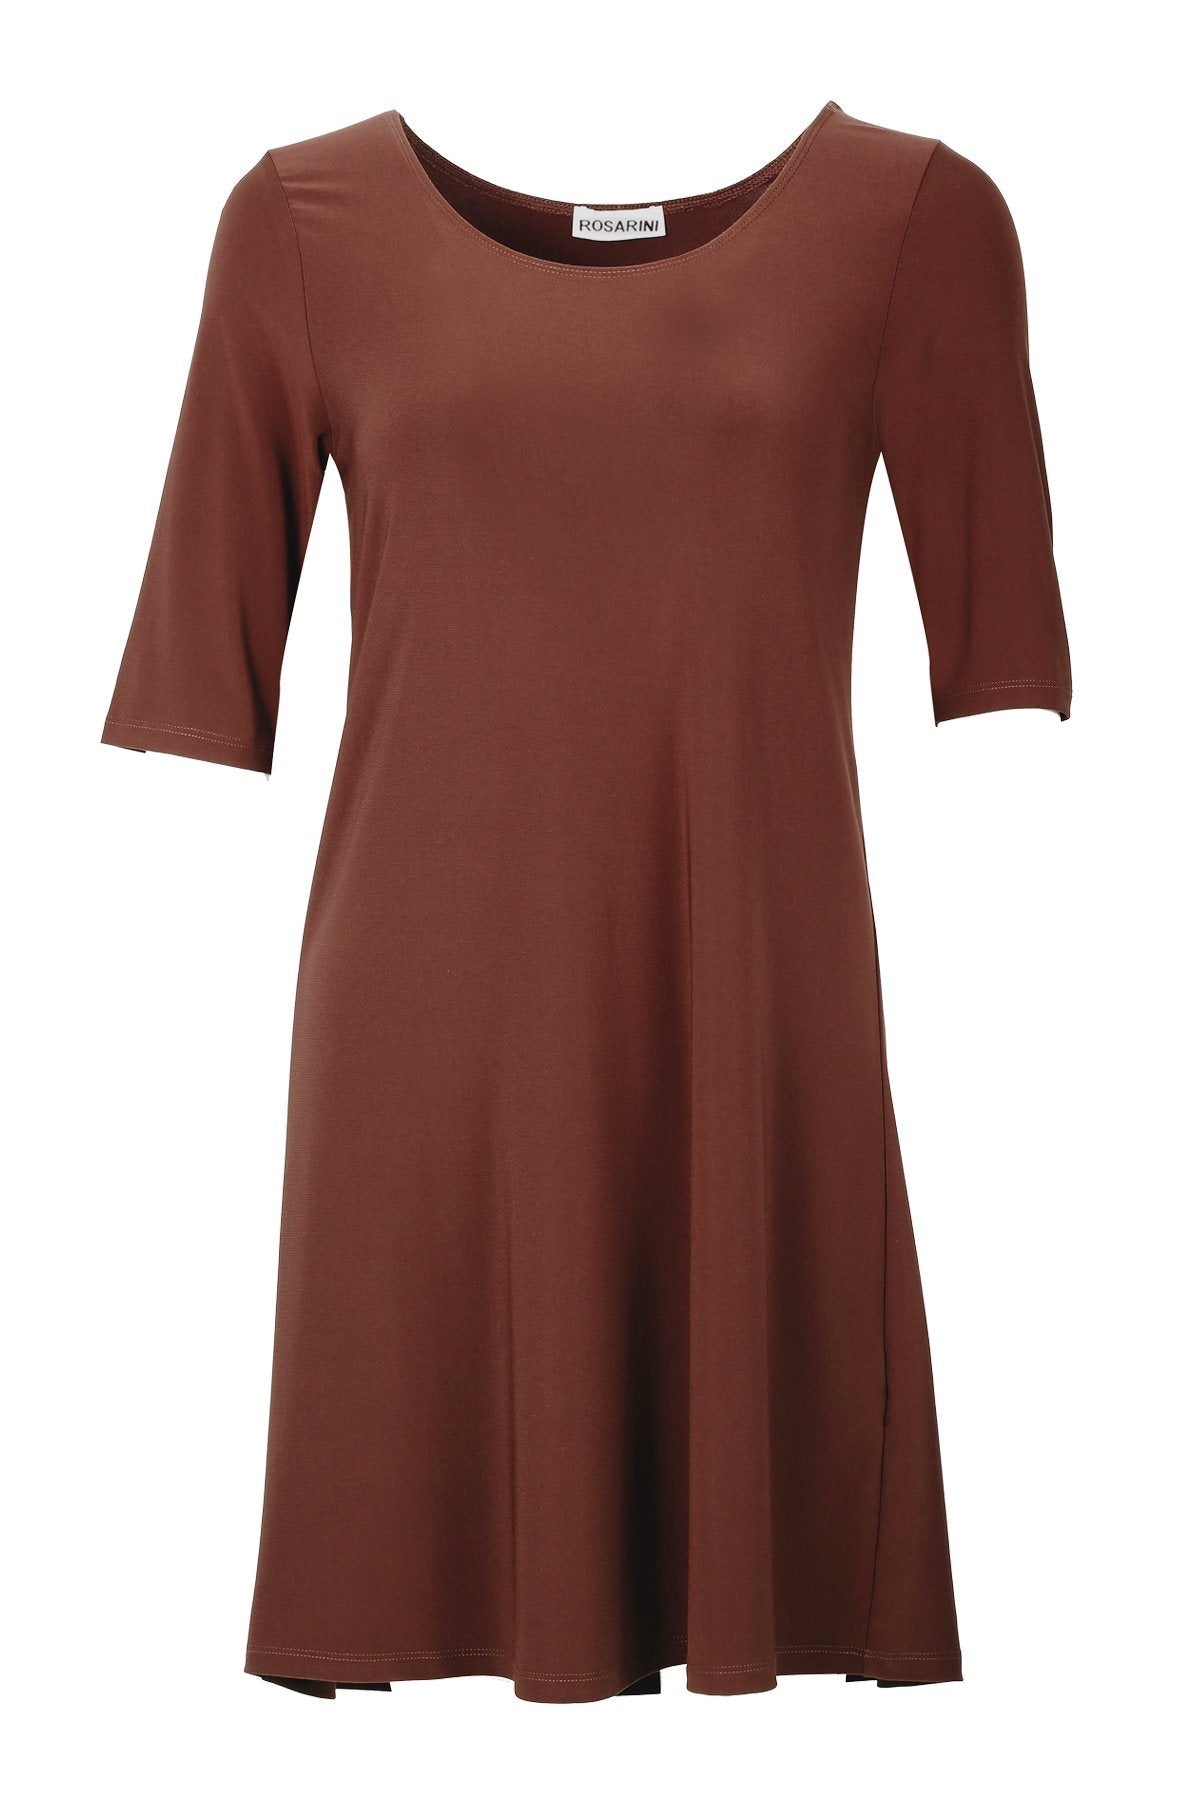 A-Line Top Brown